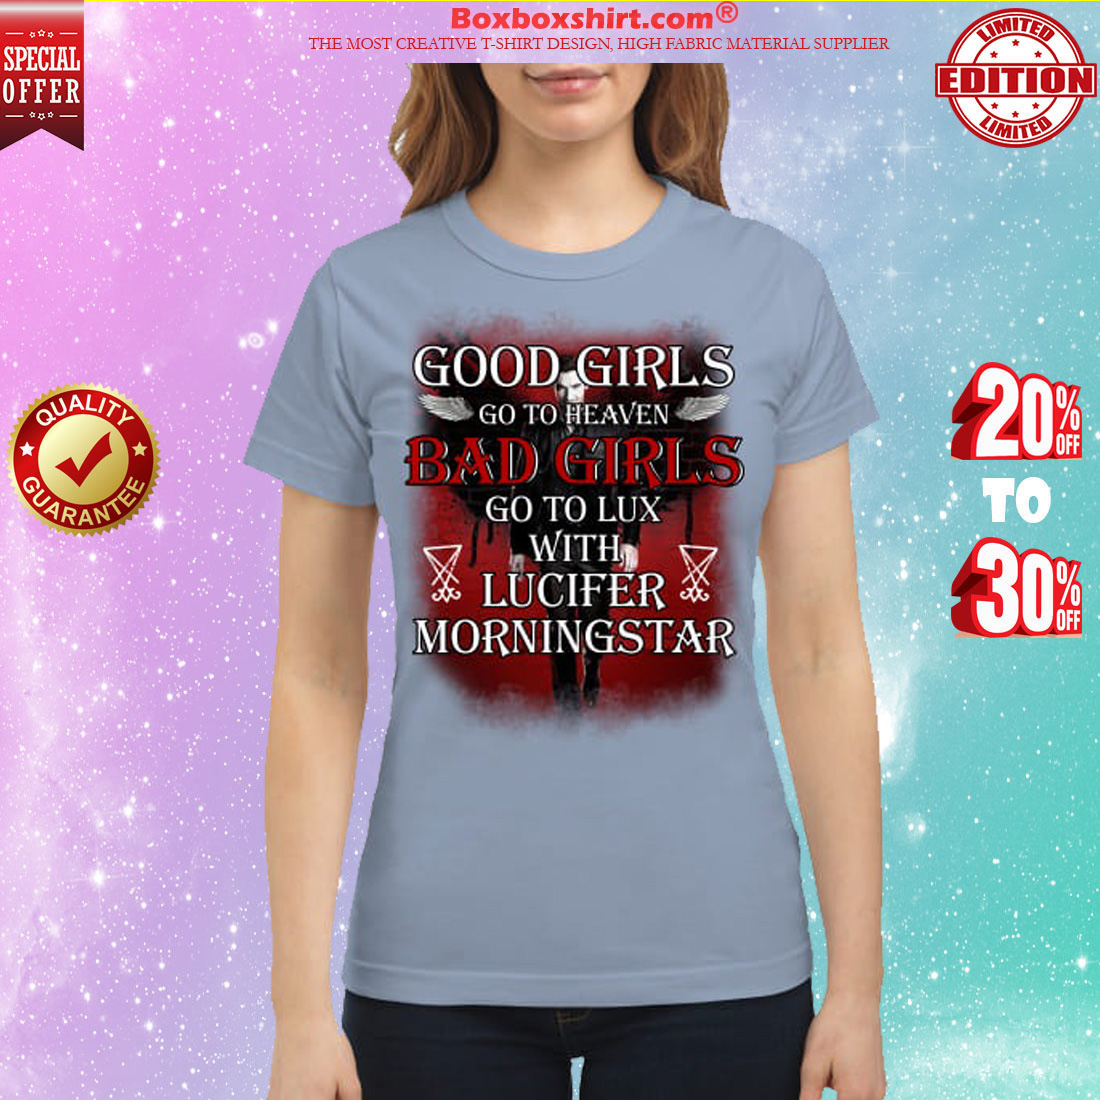 Good girls go to heaven bad girls go to lux with lucifer morningstar classic shirt